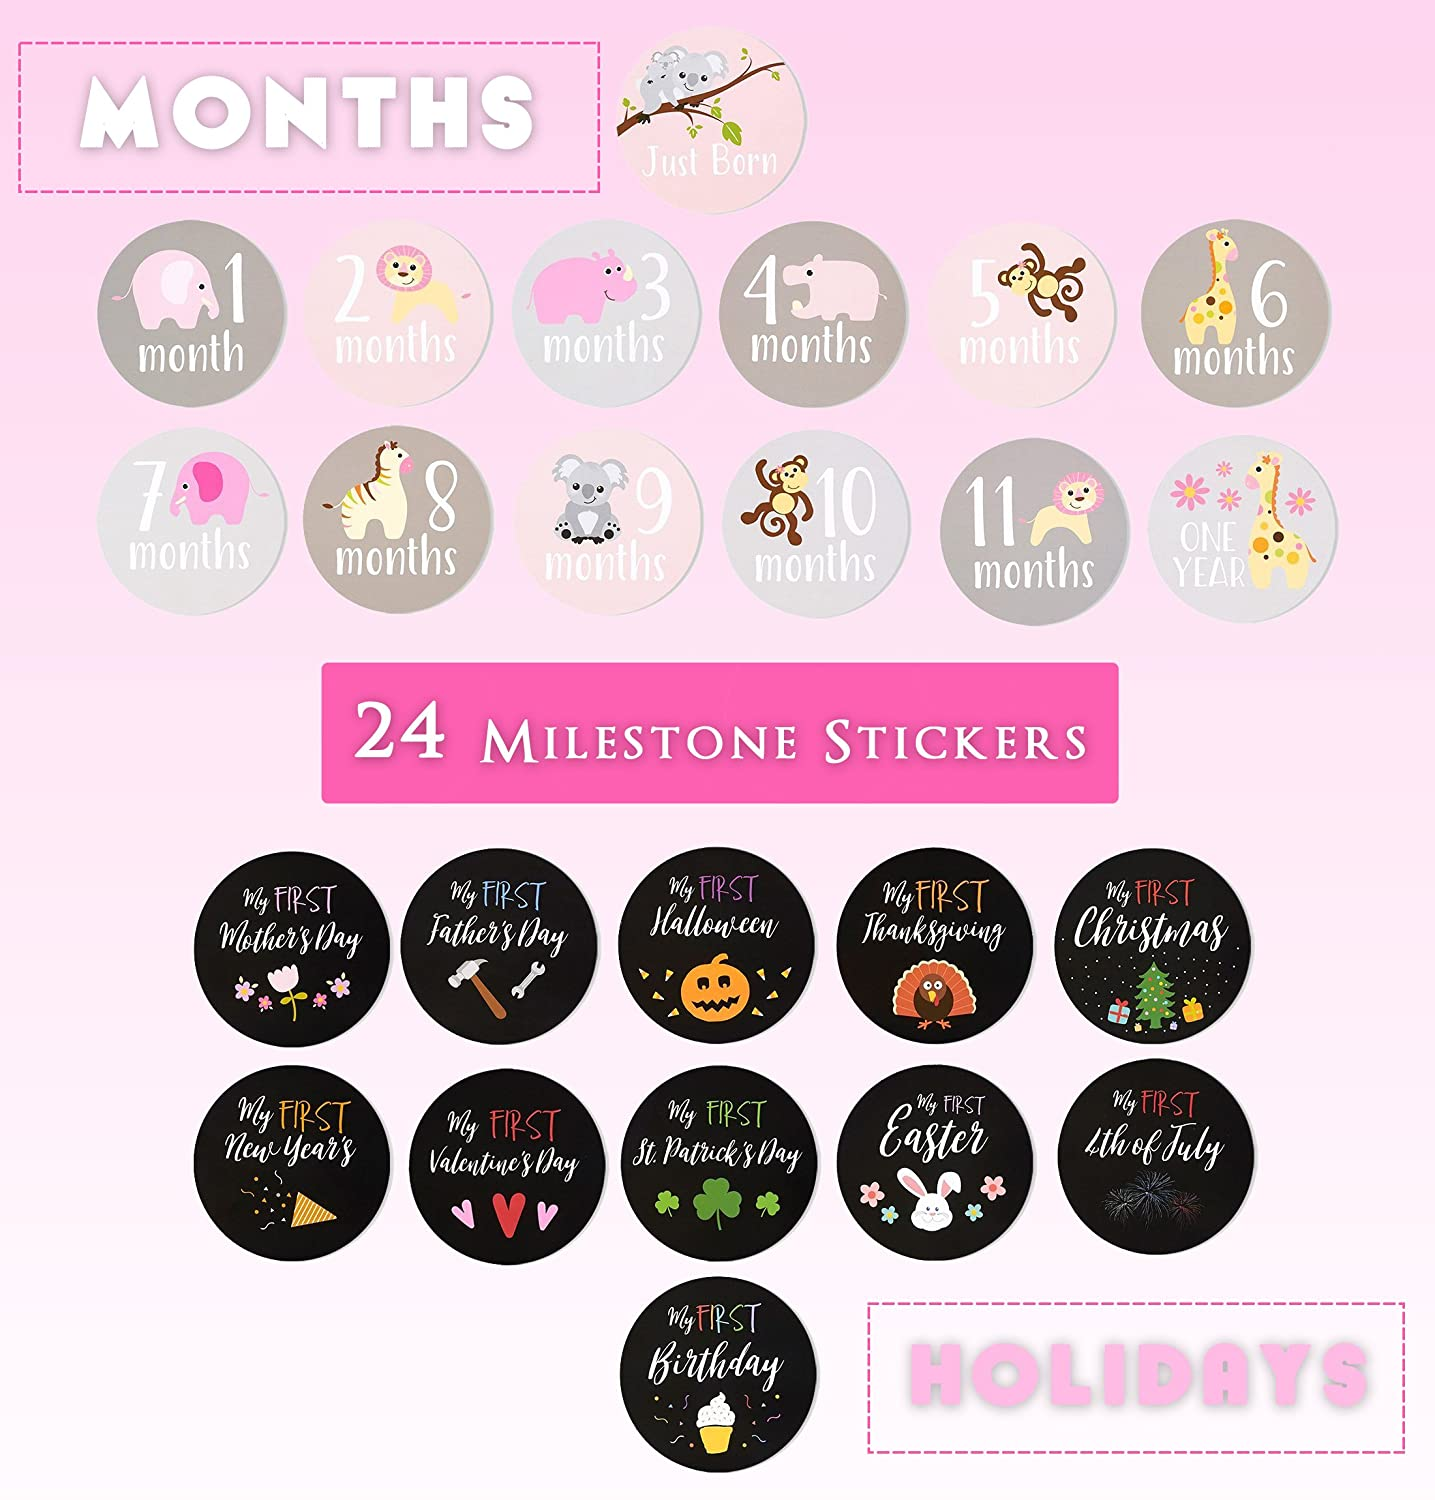 Best Paper Greetings 24 Count Baby Milestone Stickers Girls - Baby Monthly Stickers Baby Scrapbook, Keepsake Journal Baby Pictures